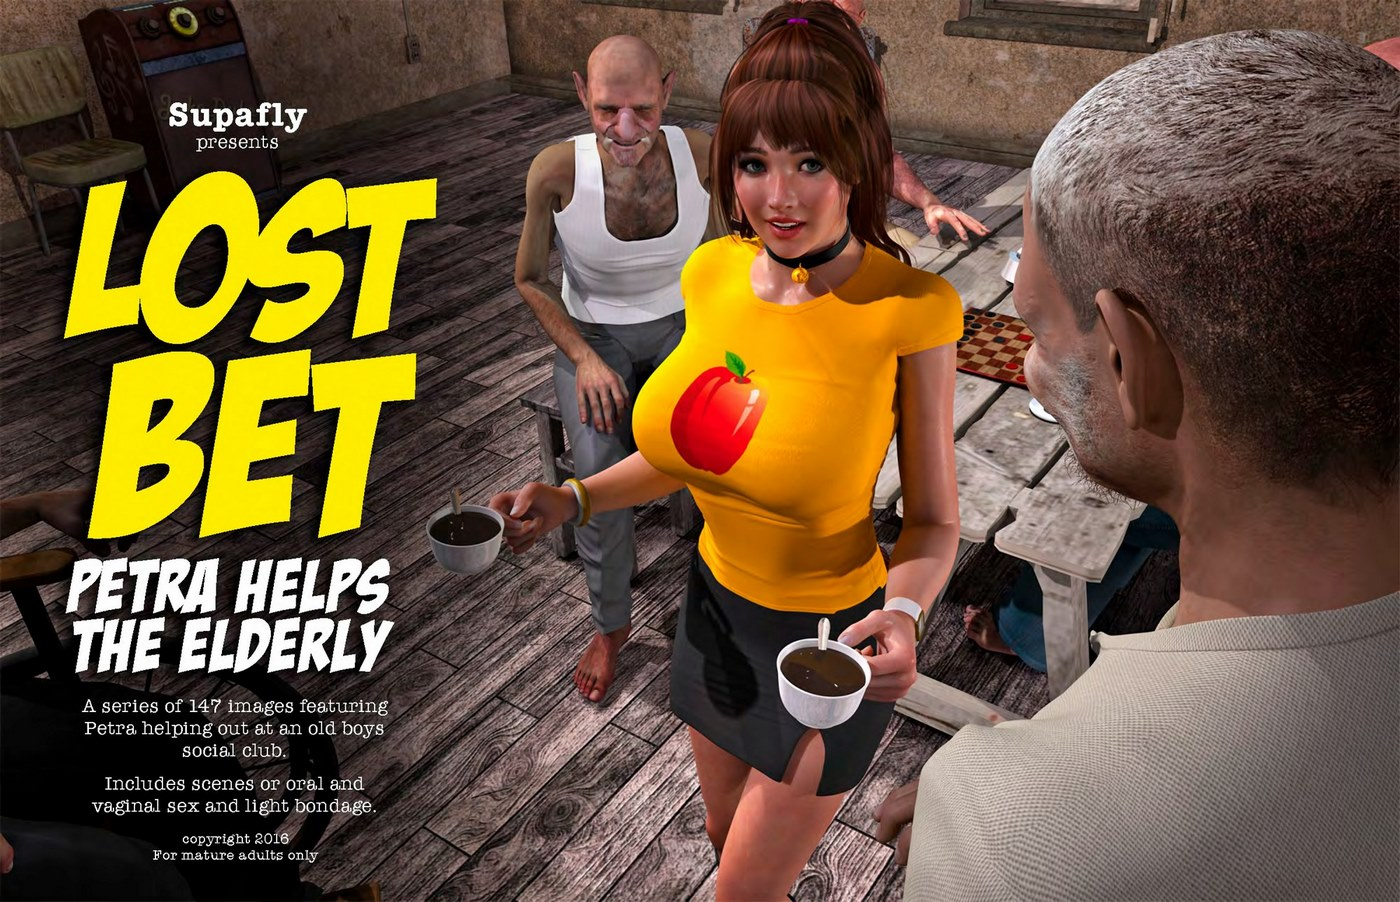 Lost Bet – Petra Helps The Elderly image 1